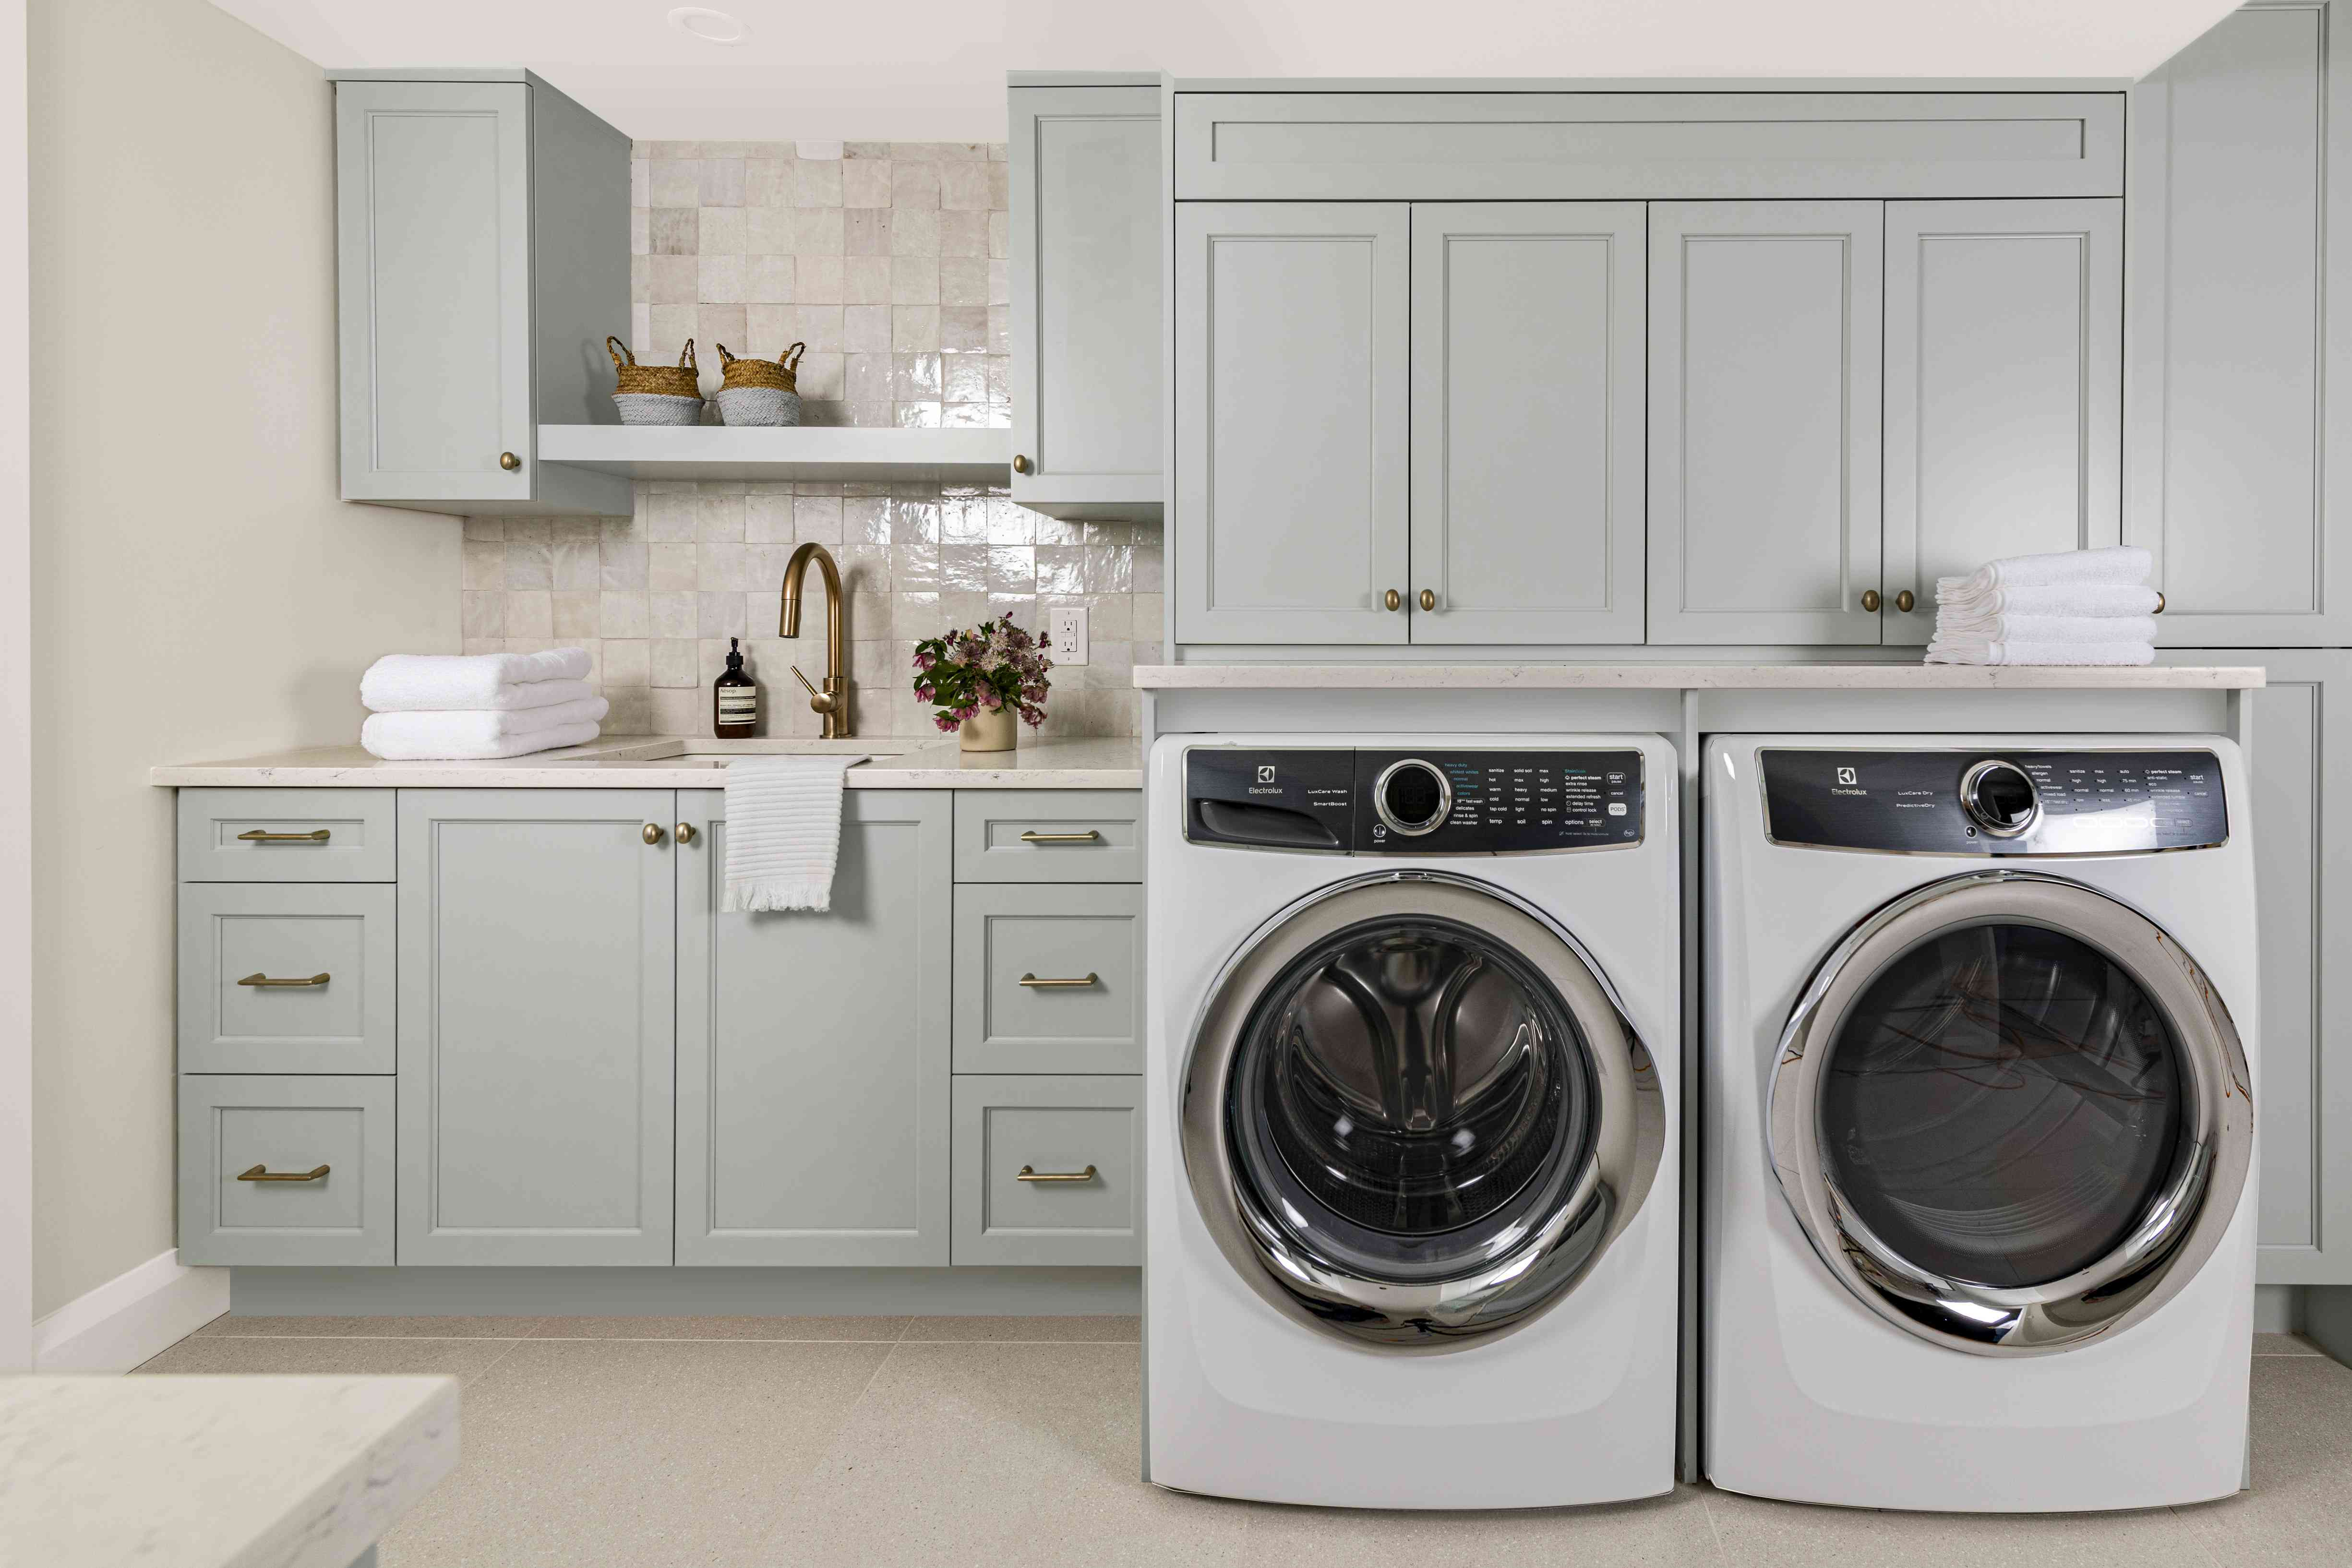 Blue and tan laundry room